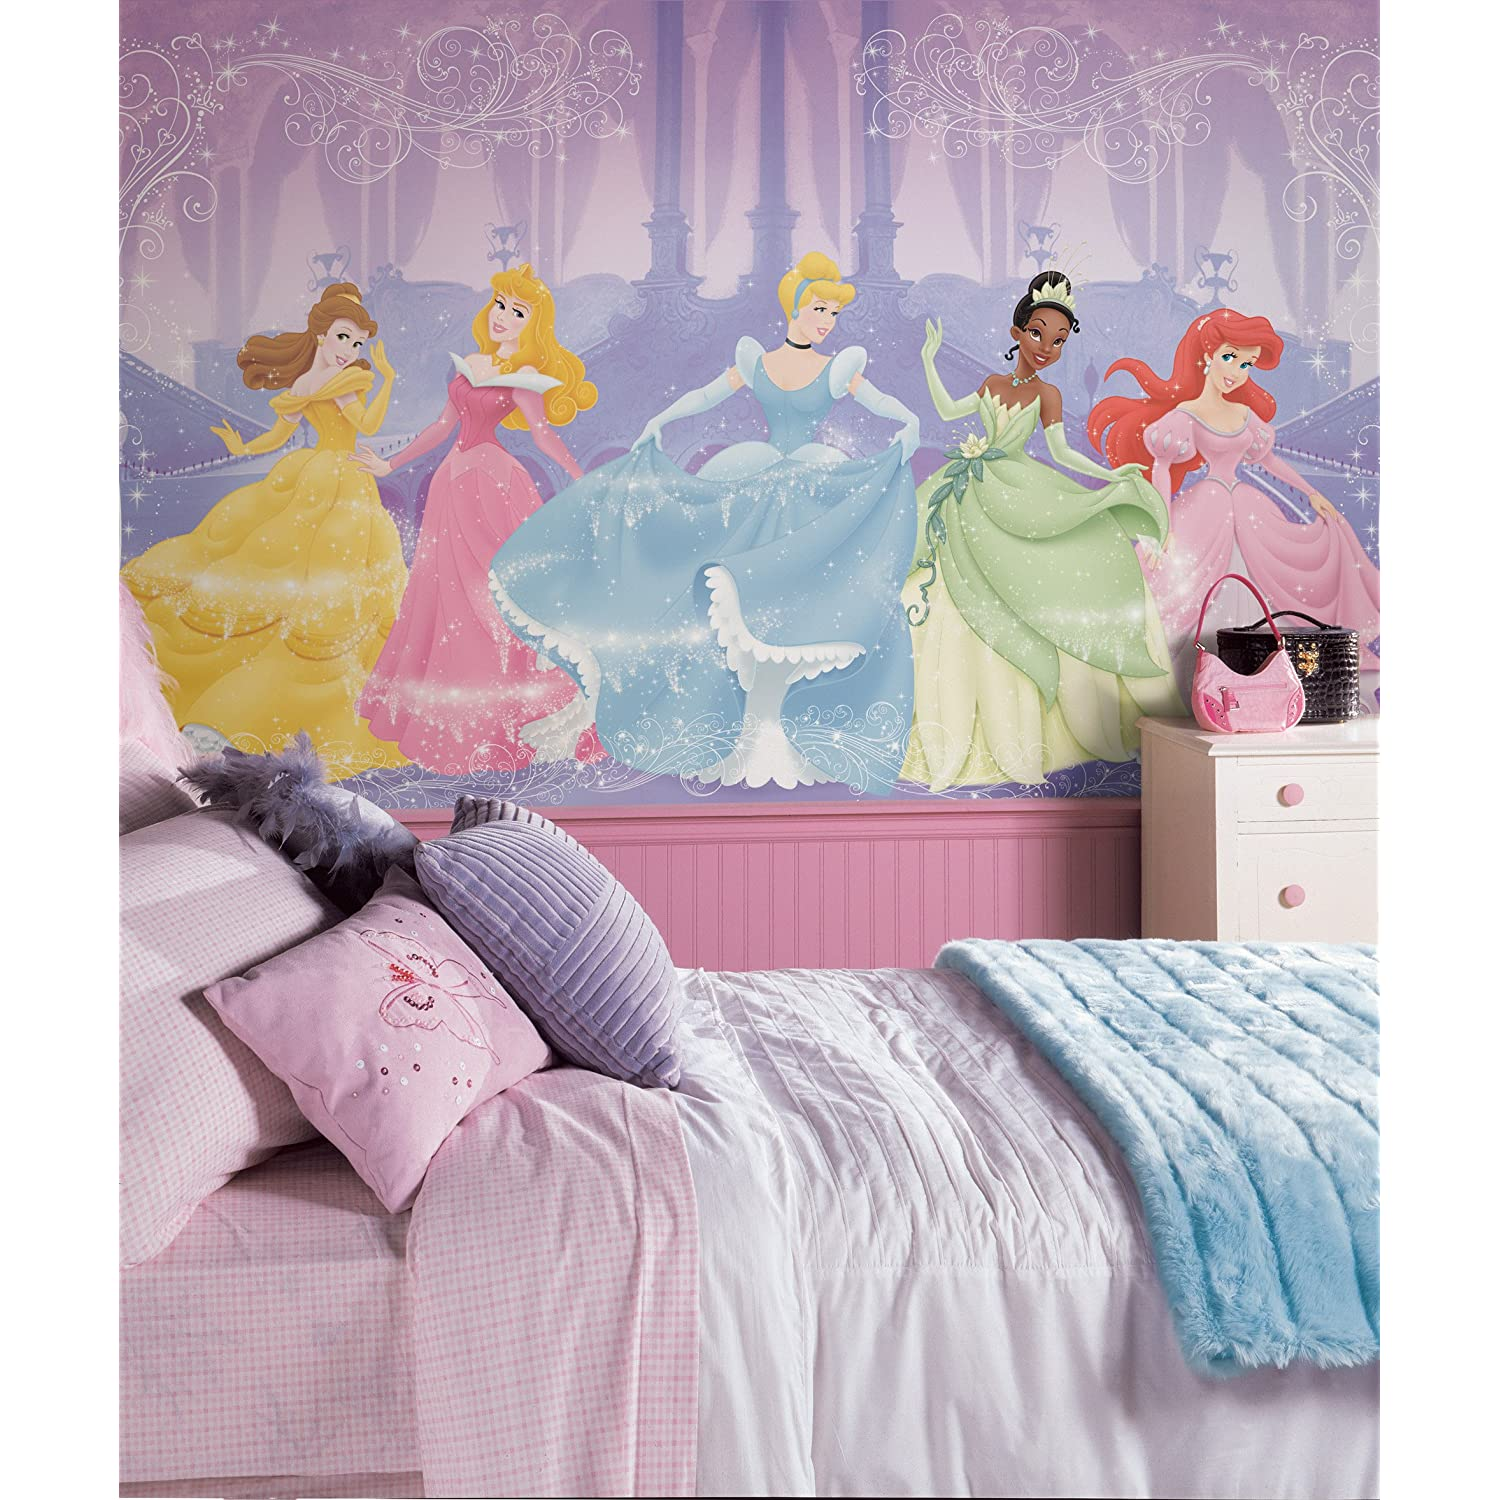 disney perfect princess 6 foot by 10 5 foot prepasted wall mural buy